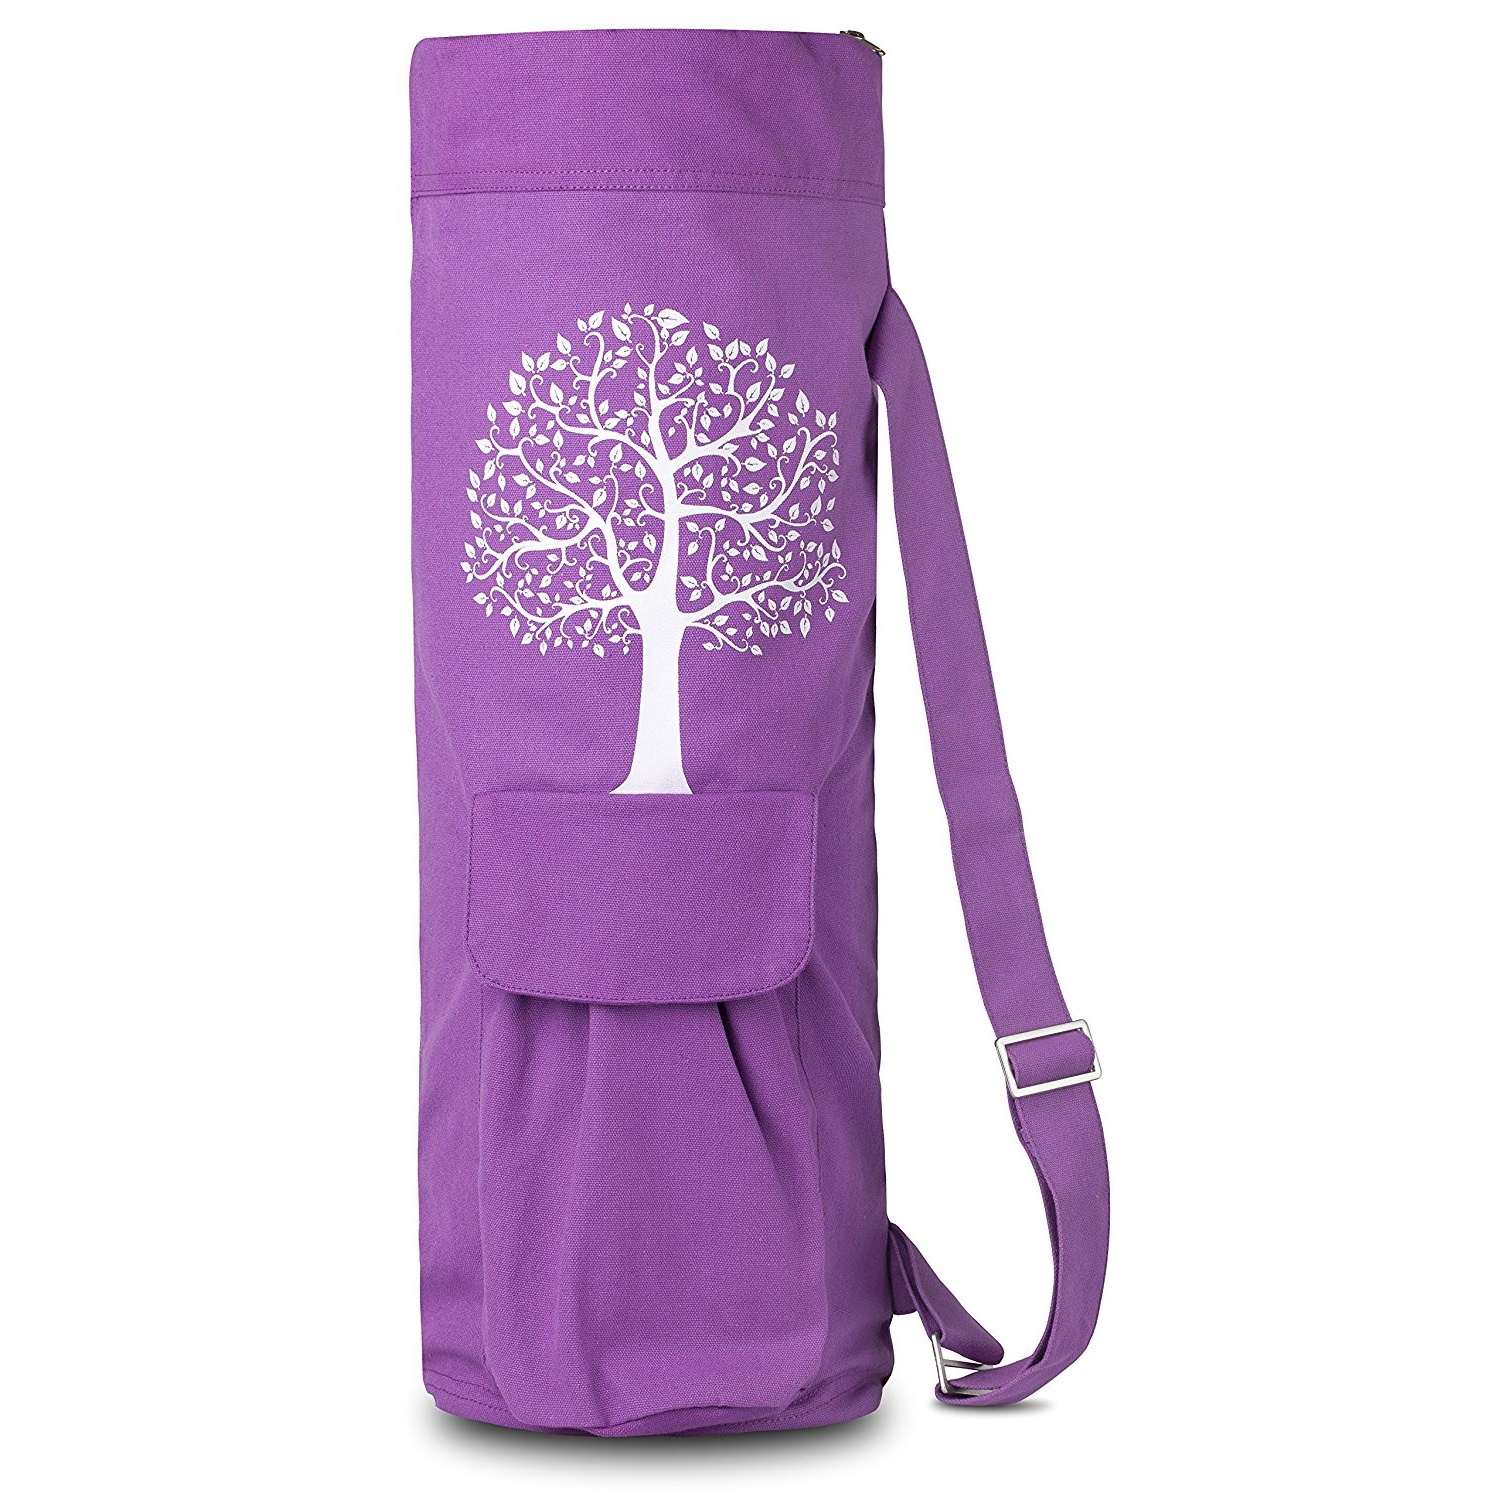 balancefrom goyoga purple yoga mat bag